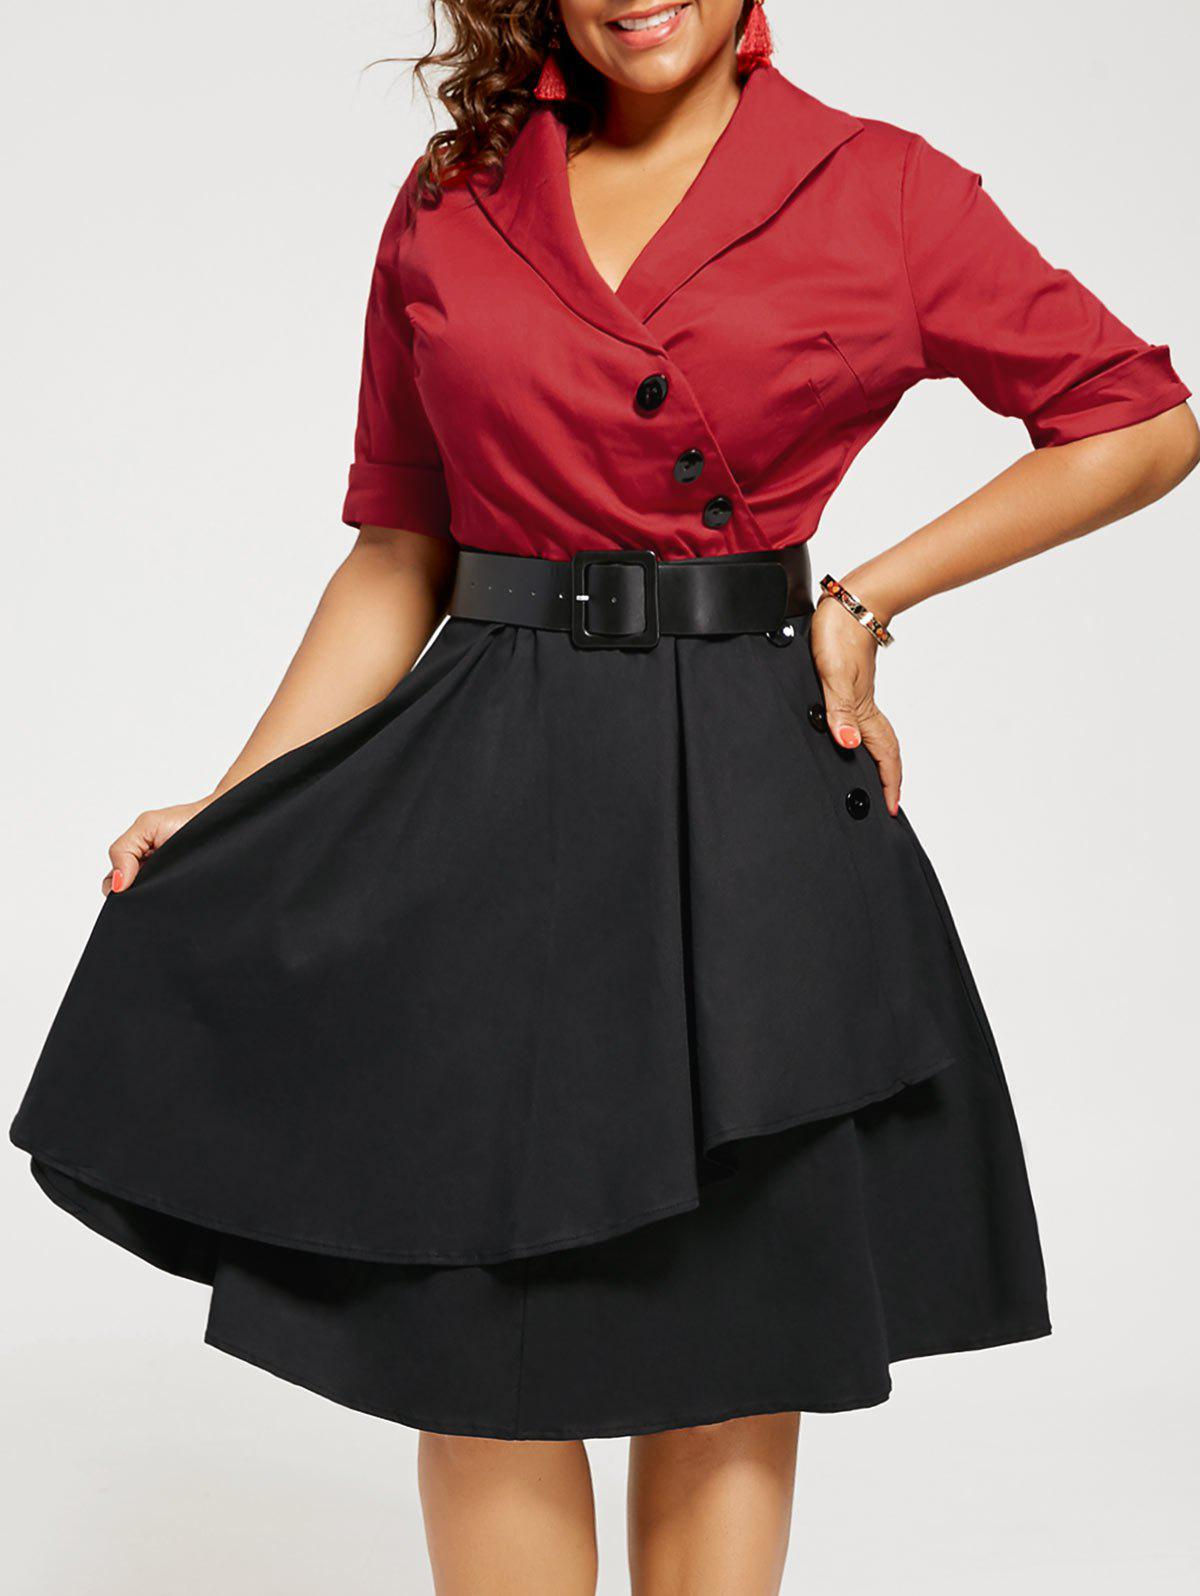 Plus Size Two Tone A Line Vintage DressWOMEN<br><br>Size: 4XL; Color: RED; Style: Vintage; Material: Polyester; Silhouette: A-Line; Dresses Length: Mid-Calf; Neckline: V-Neck; Sleeve Length: Half Sleeves; Pattern Type: Others; With Belt: Yes; Season: Fall,Summer; Weight: 0.5200kg; Package Contents: 1 x Dress  1 x Belt;